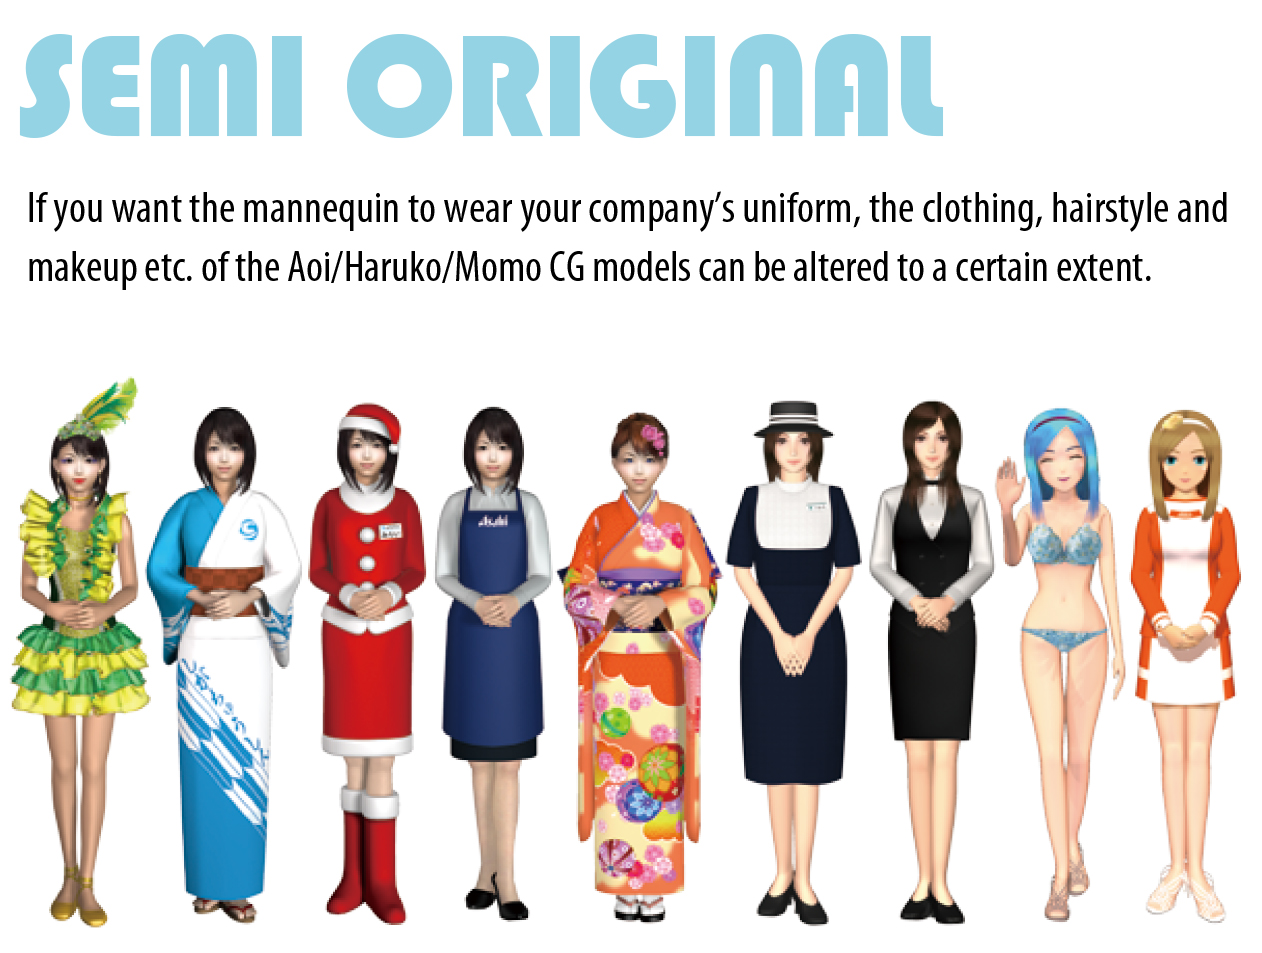 SEMI ORIGINAL If you want the mannequin to wear your company's uniform, the clothing, hairstyle and makeup etc. of the Aoi/Haruko/Momo CG models can be altered to a certain extent.